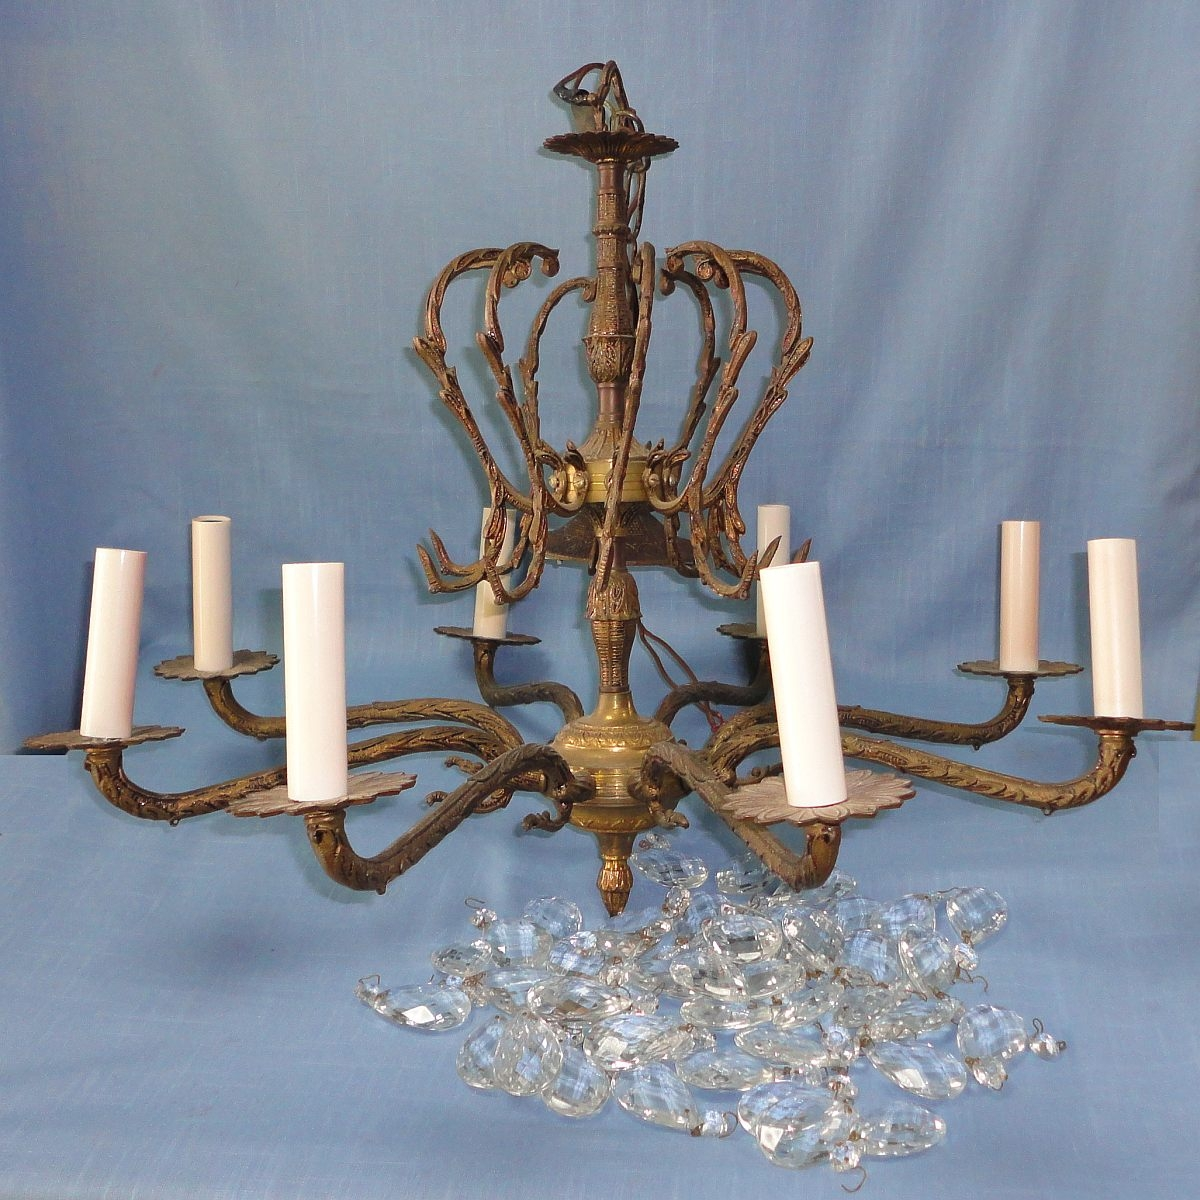 Vintage Brass Crystal Chandelier 83549 Sitweb Inside Vintage Brass Chandeliers (Image 12 of 15)